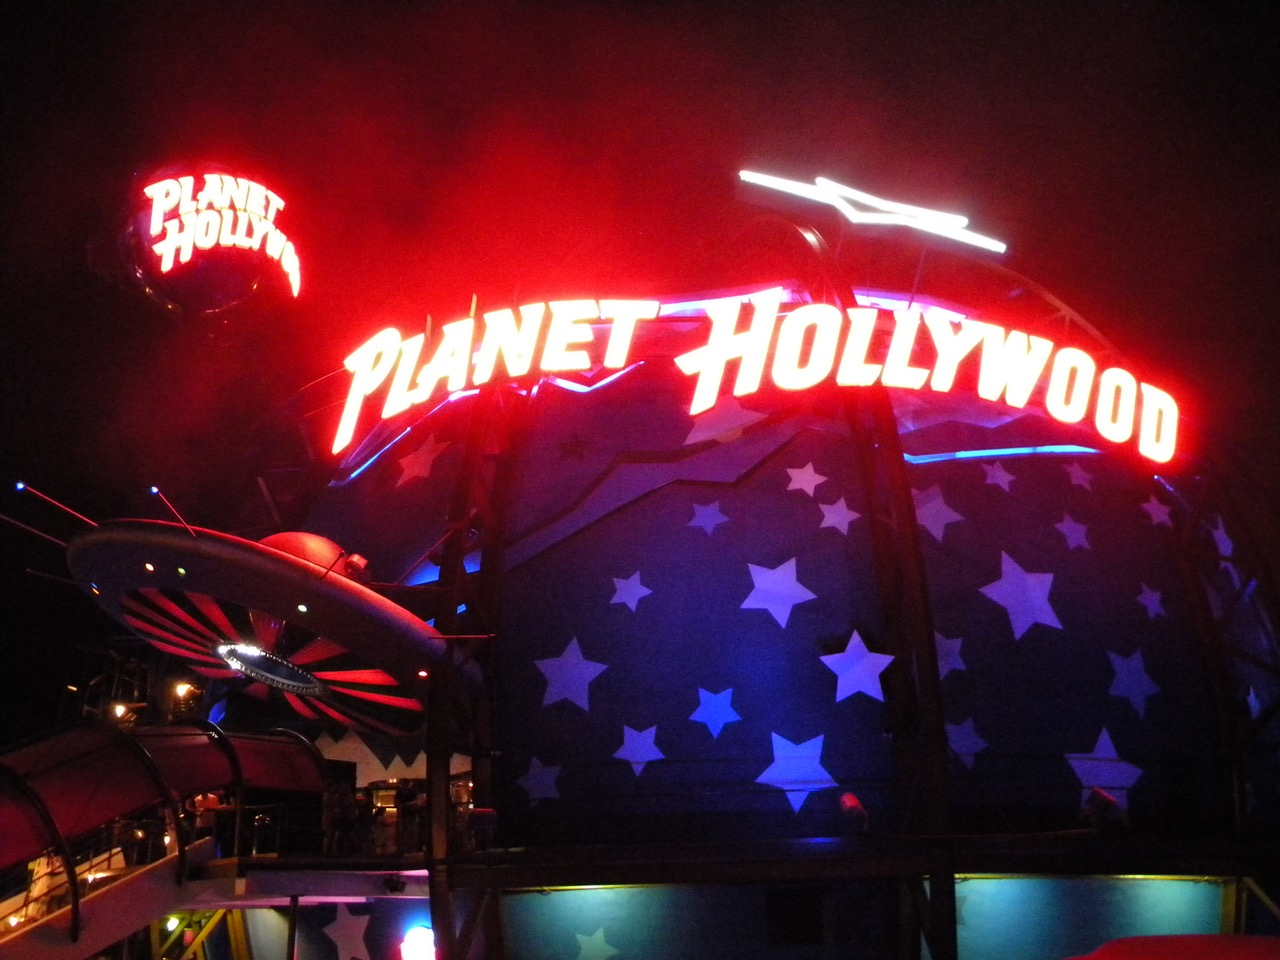 When Planet Hollywood opened, lines backed up for hours. It became the most successful restaurant and retail unit in its chain. Photo by J. Jeff Kobrer.